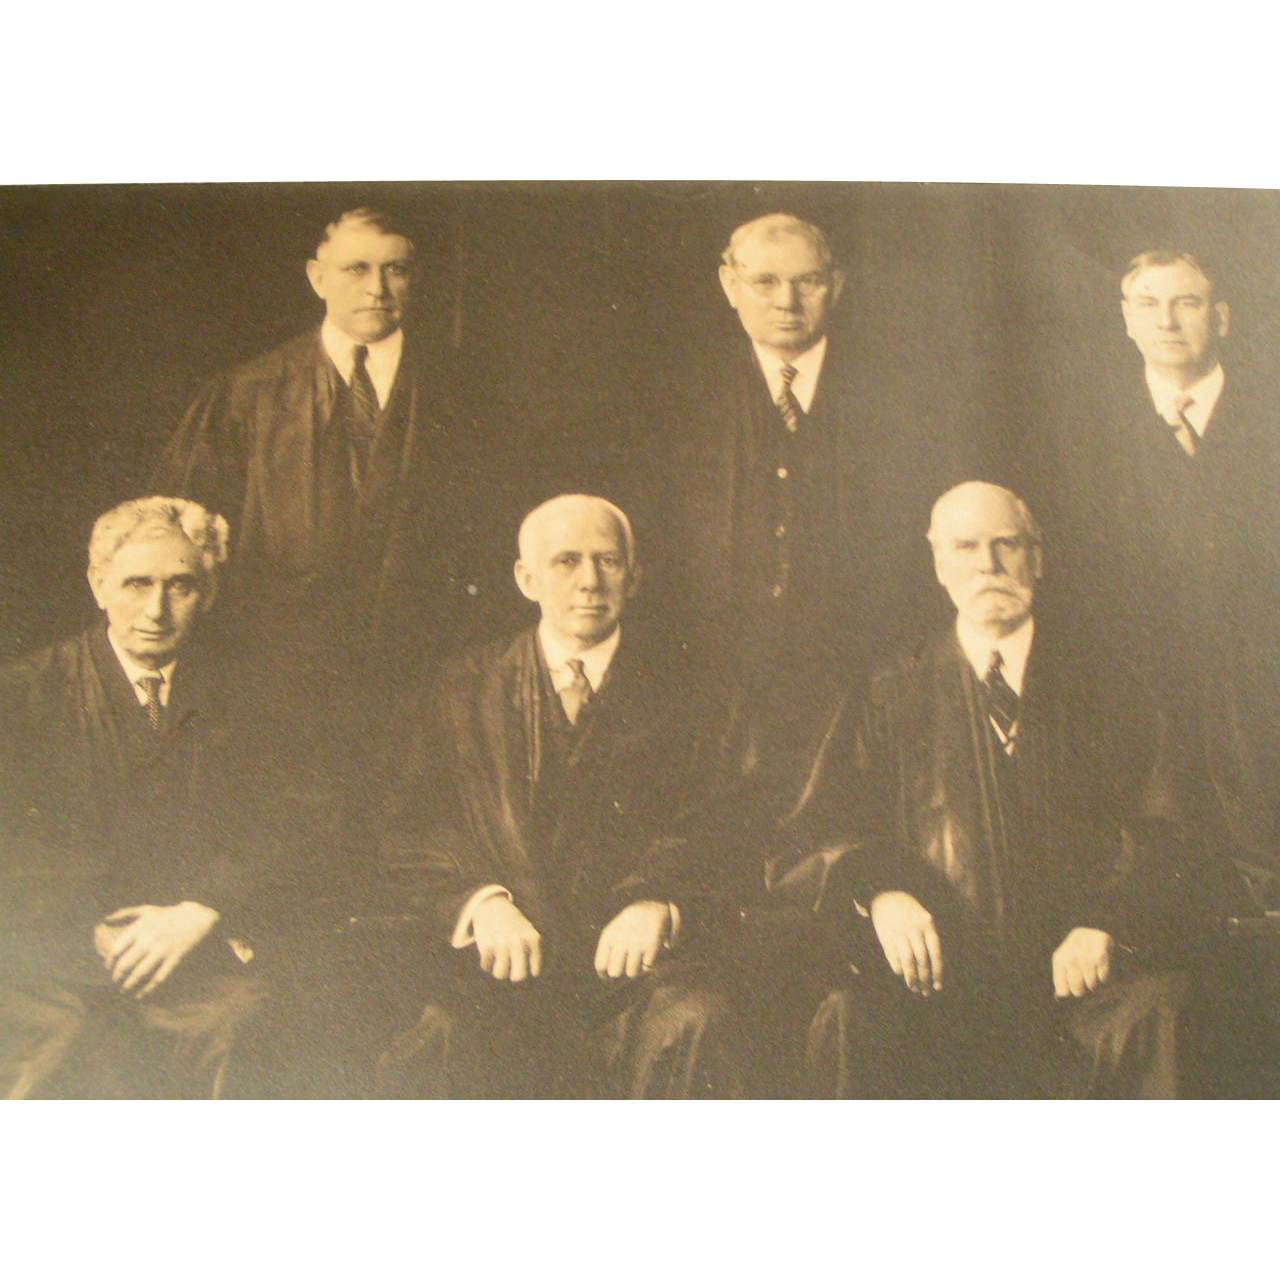 Historic Supreme Court 1932 Photo Portrait (original)